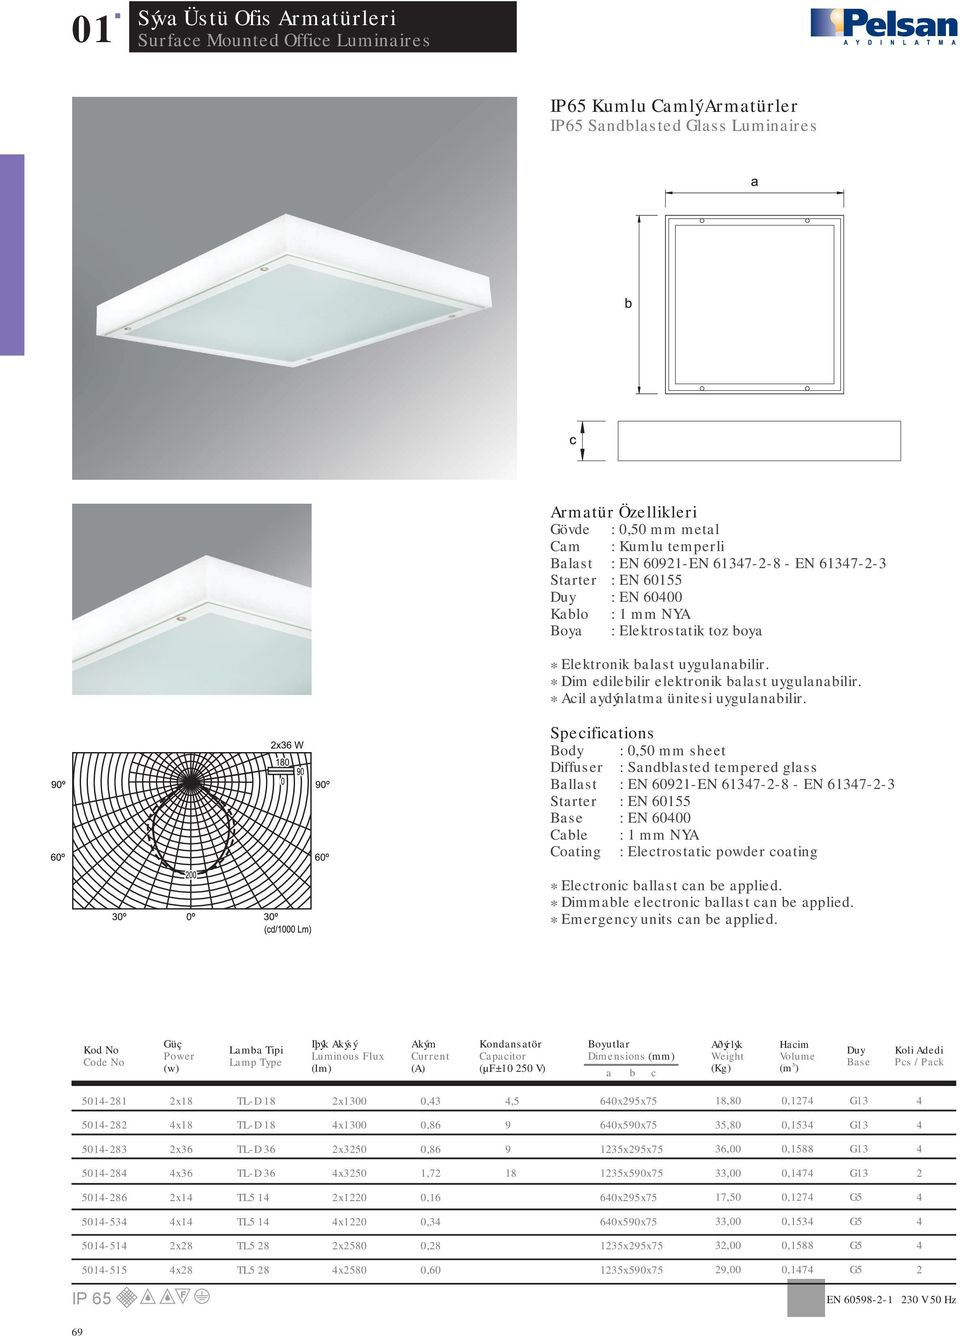 Diffuser : Sandblasted tempered glass Ballast : EN 0-EN 37--8 - EN 37--3 Starter : EN 055 : EN 000 * Electronic ballast can be applied.